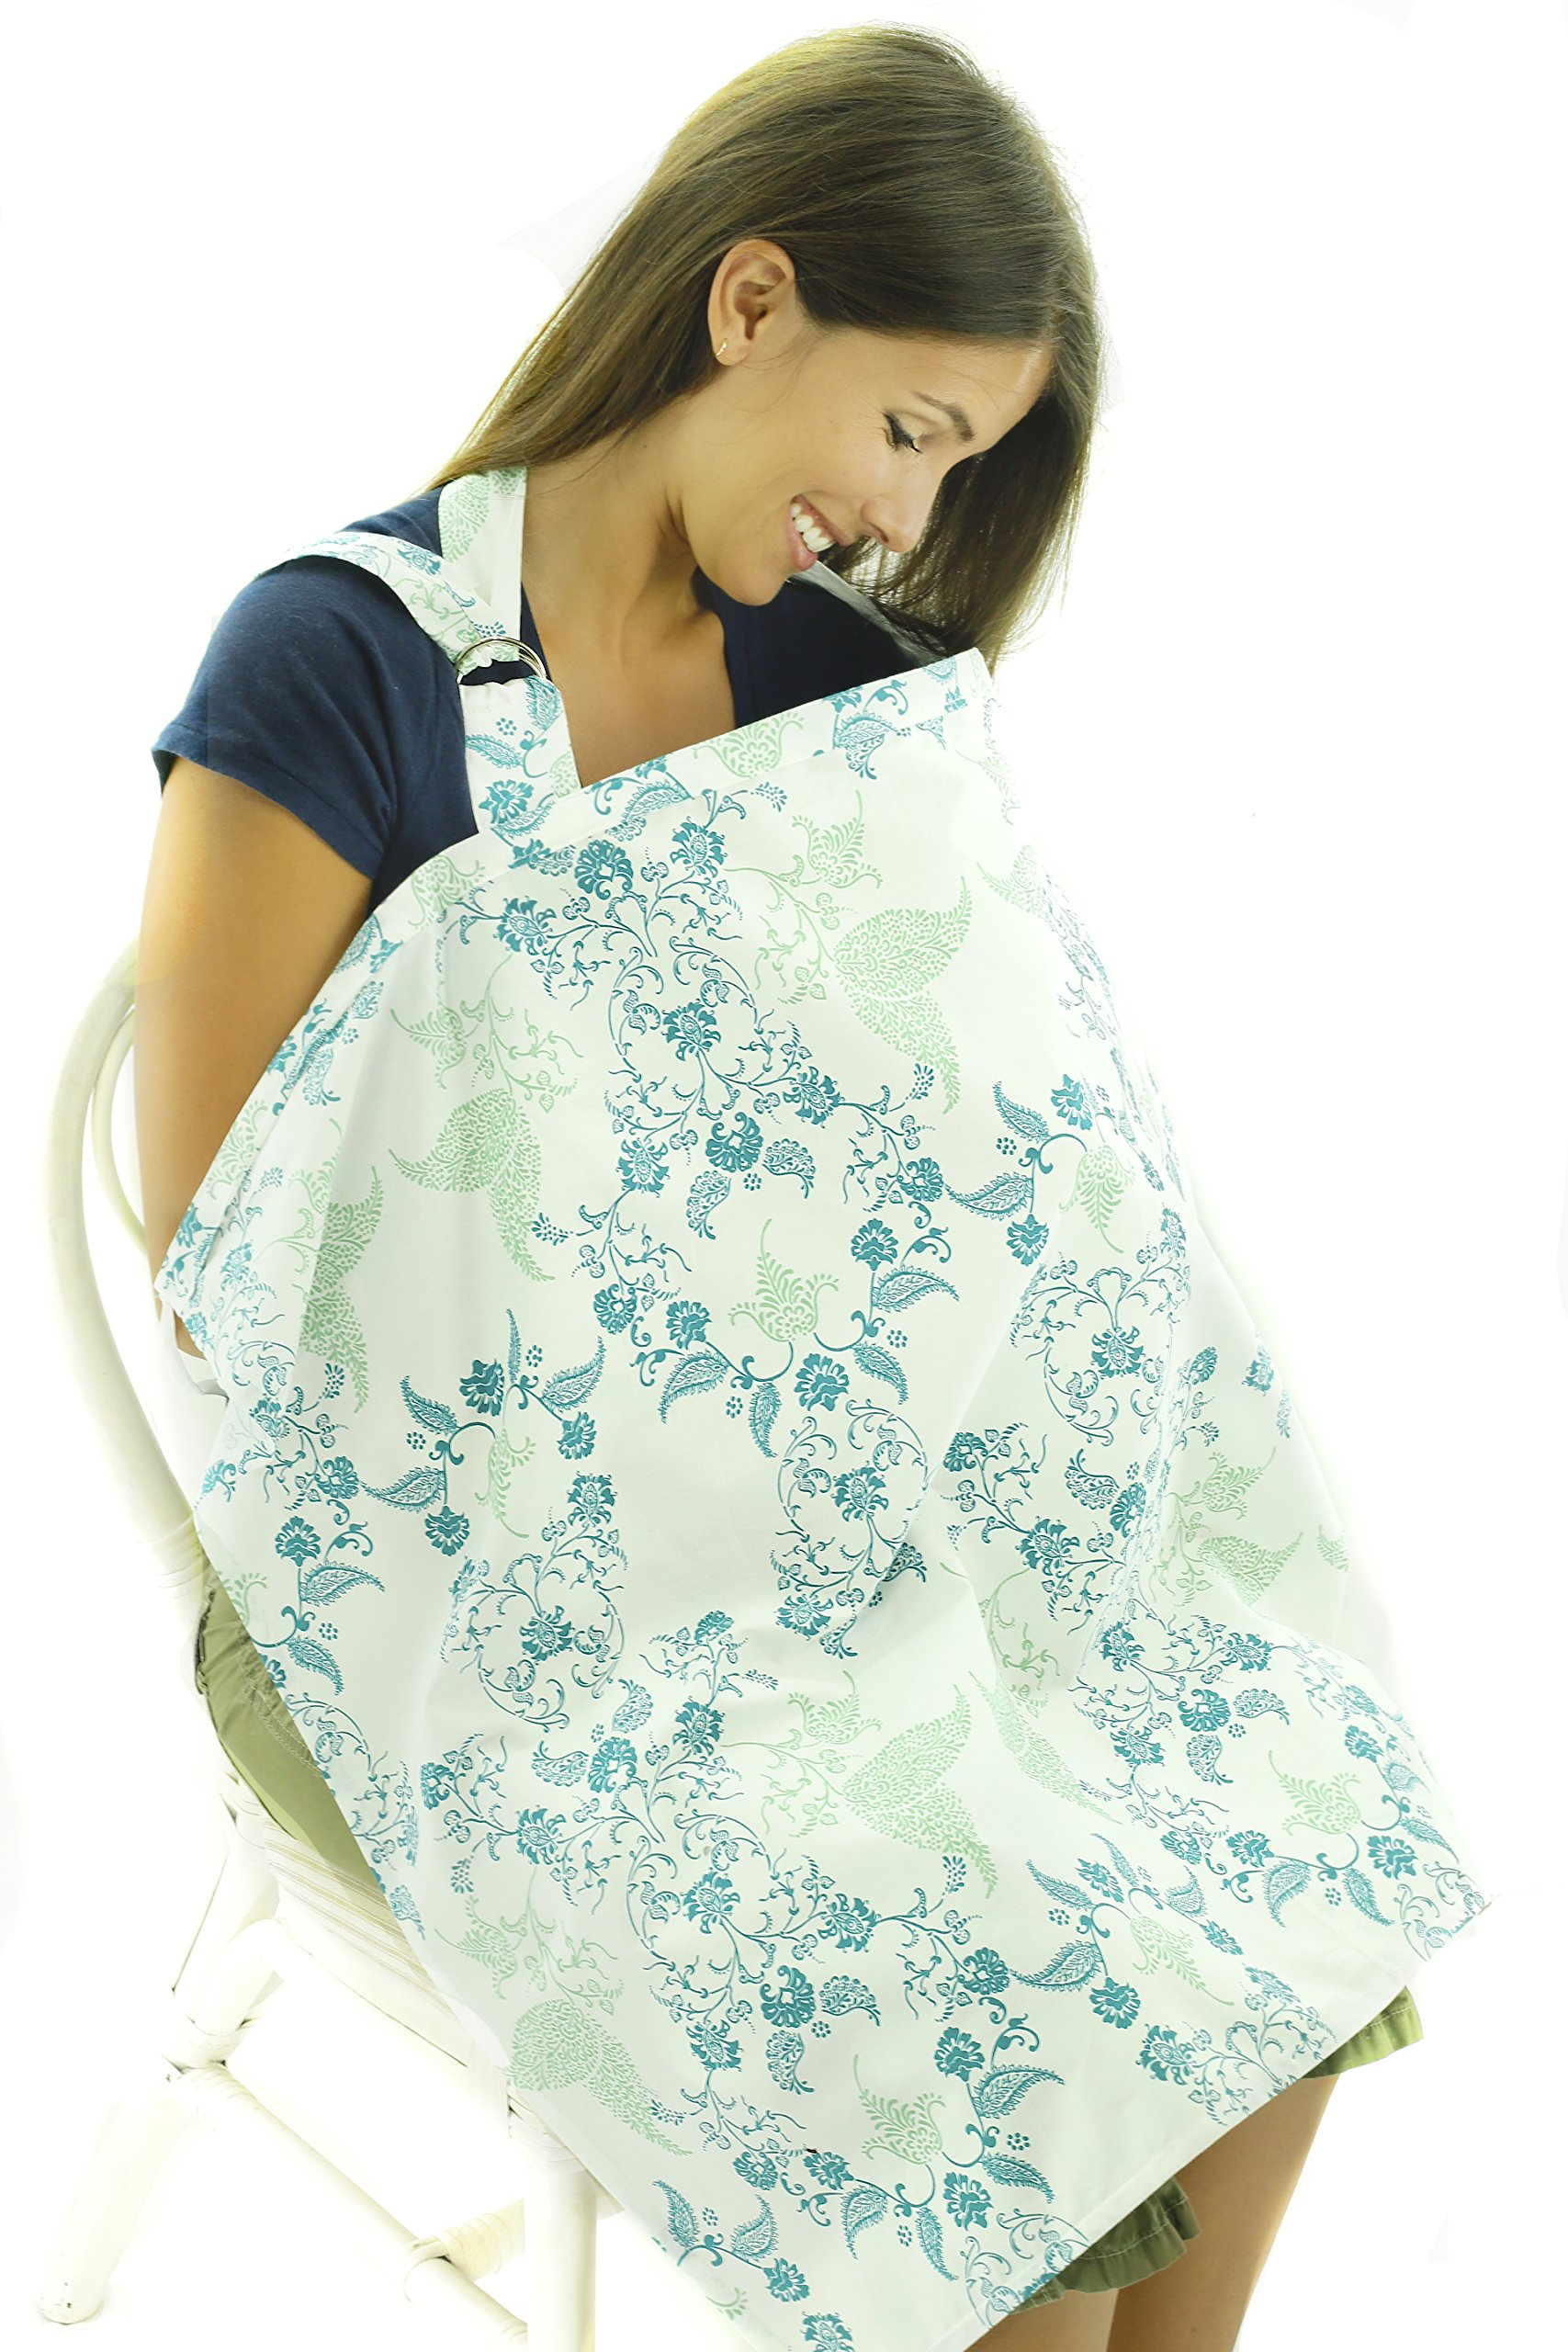 Now Born Breastfeeding Nursing Cover: Floral Green and Blue Cotton w/Burp Cloth by Now Born